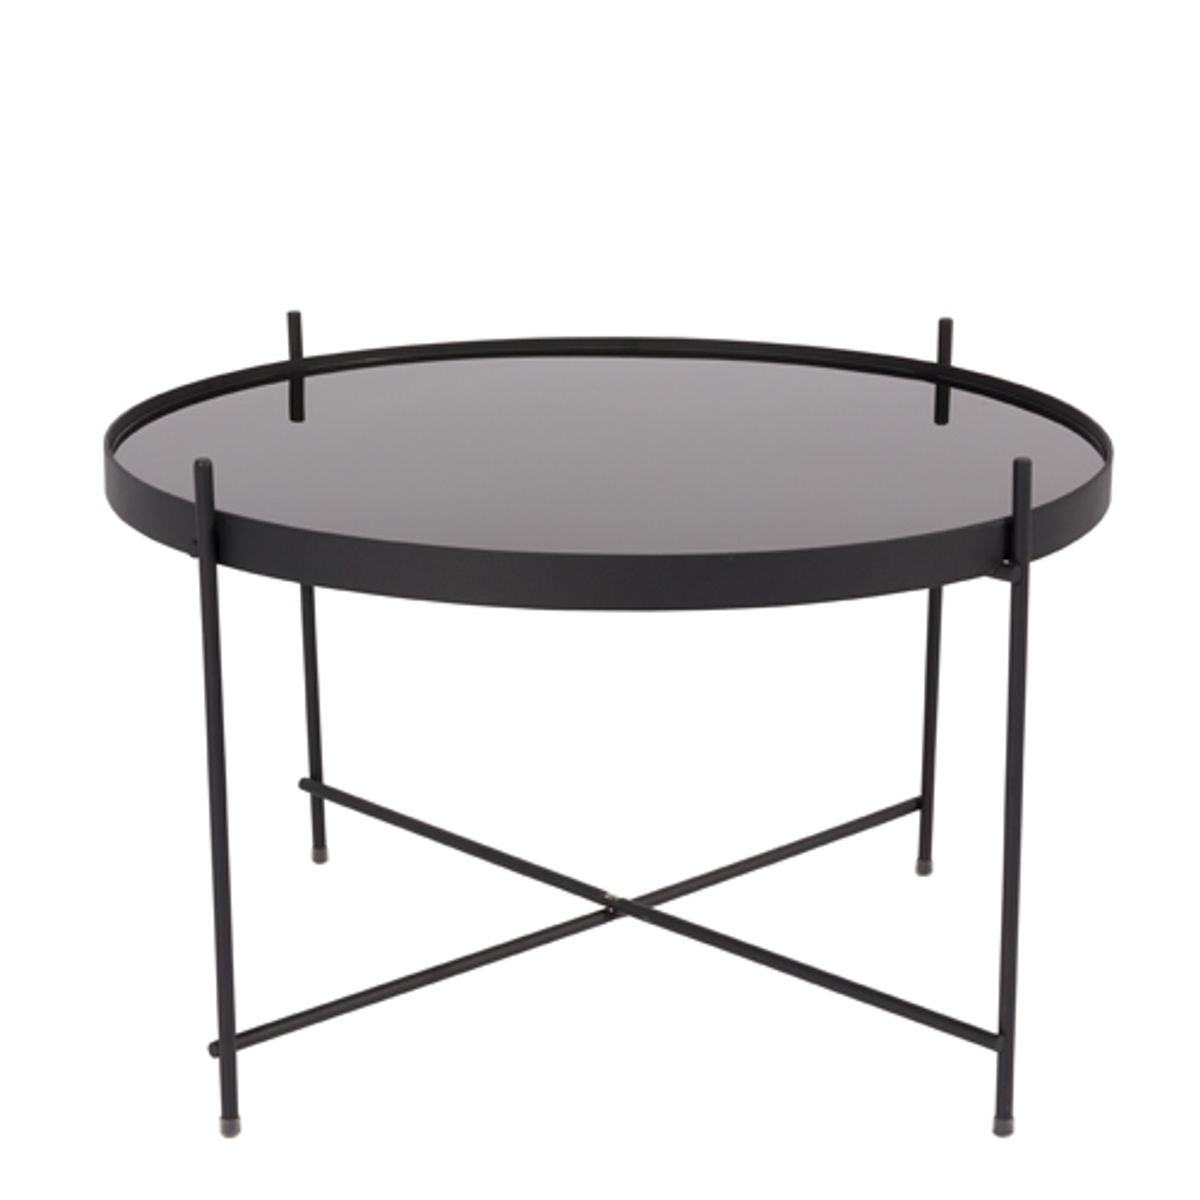 table basse ronde en verre noir. Black Bedroom Furniture Sets. Home Design Ideas